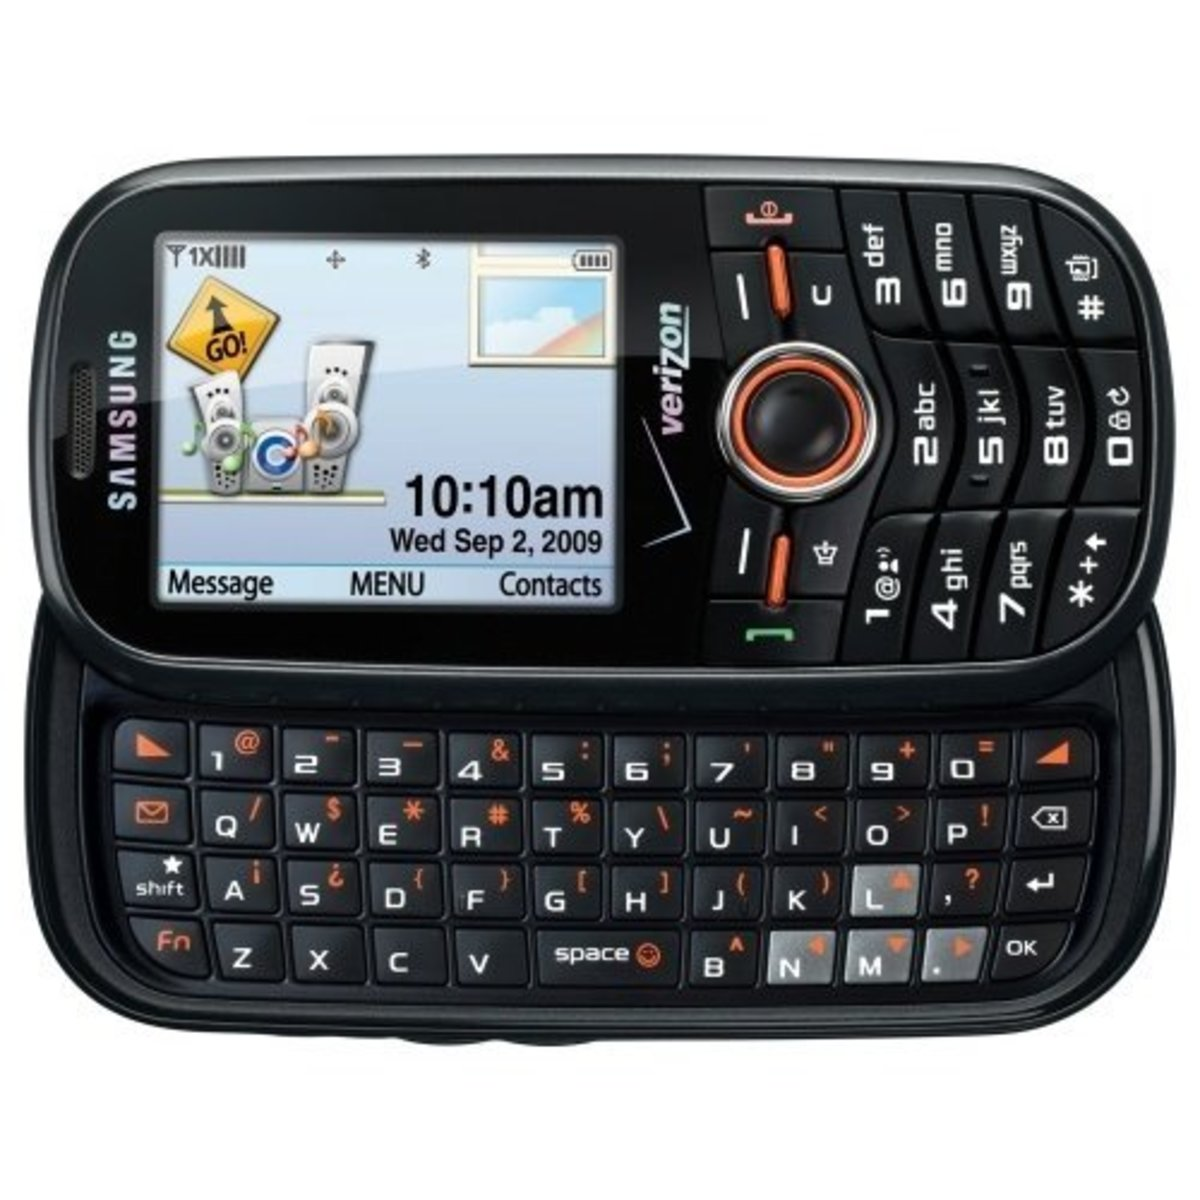 If you'd prefer to have a traditional keyboard, then the Samsung Intensity might just be the phone for you.